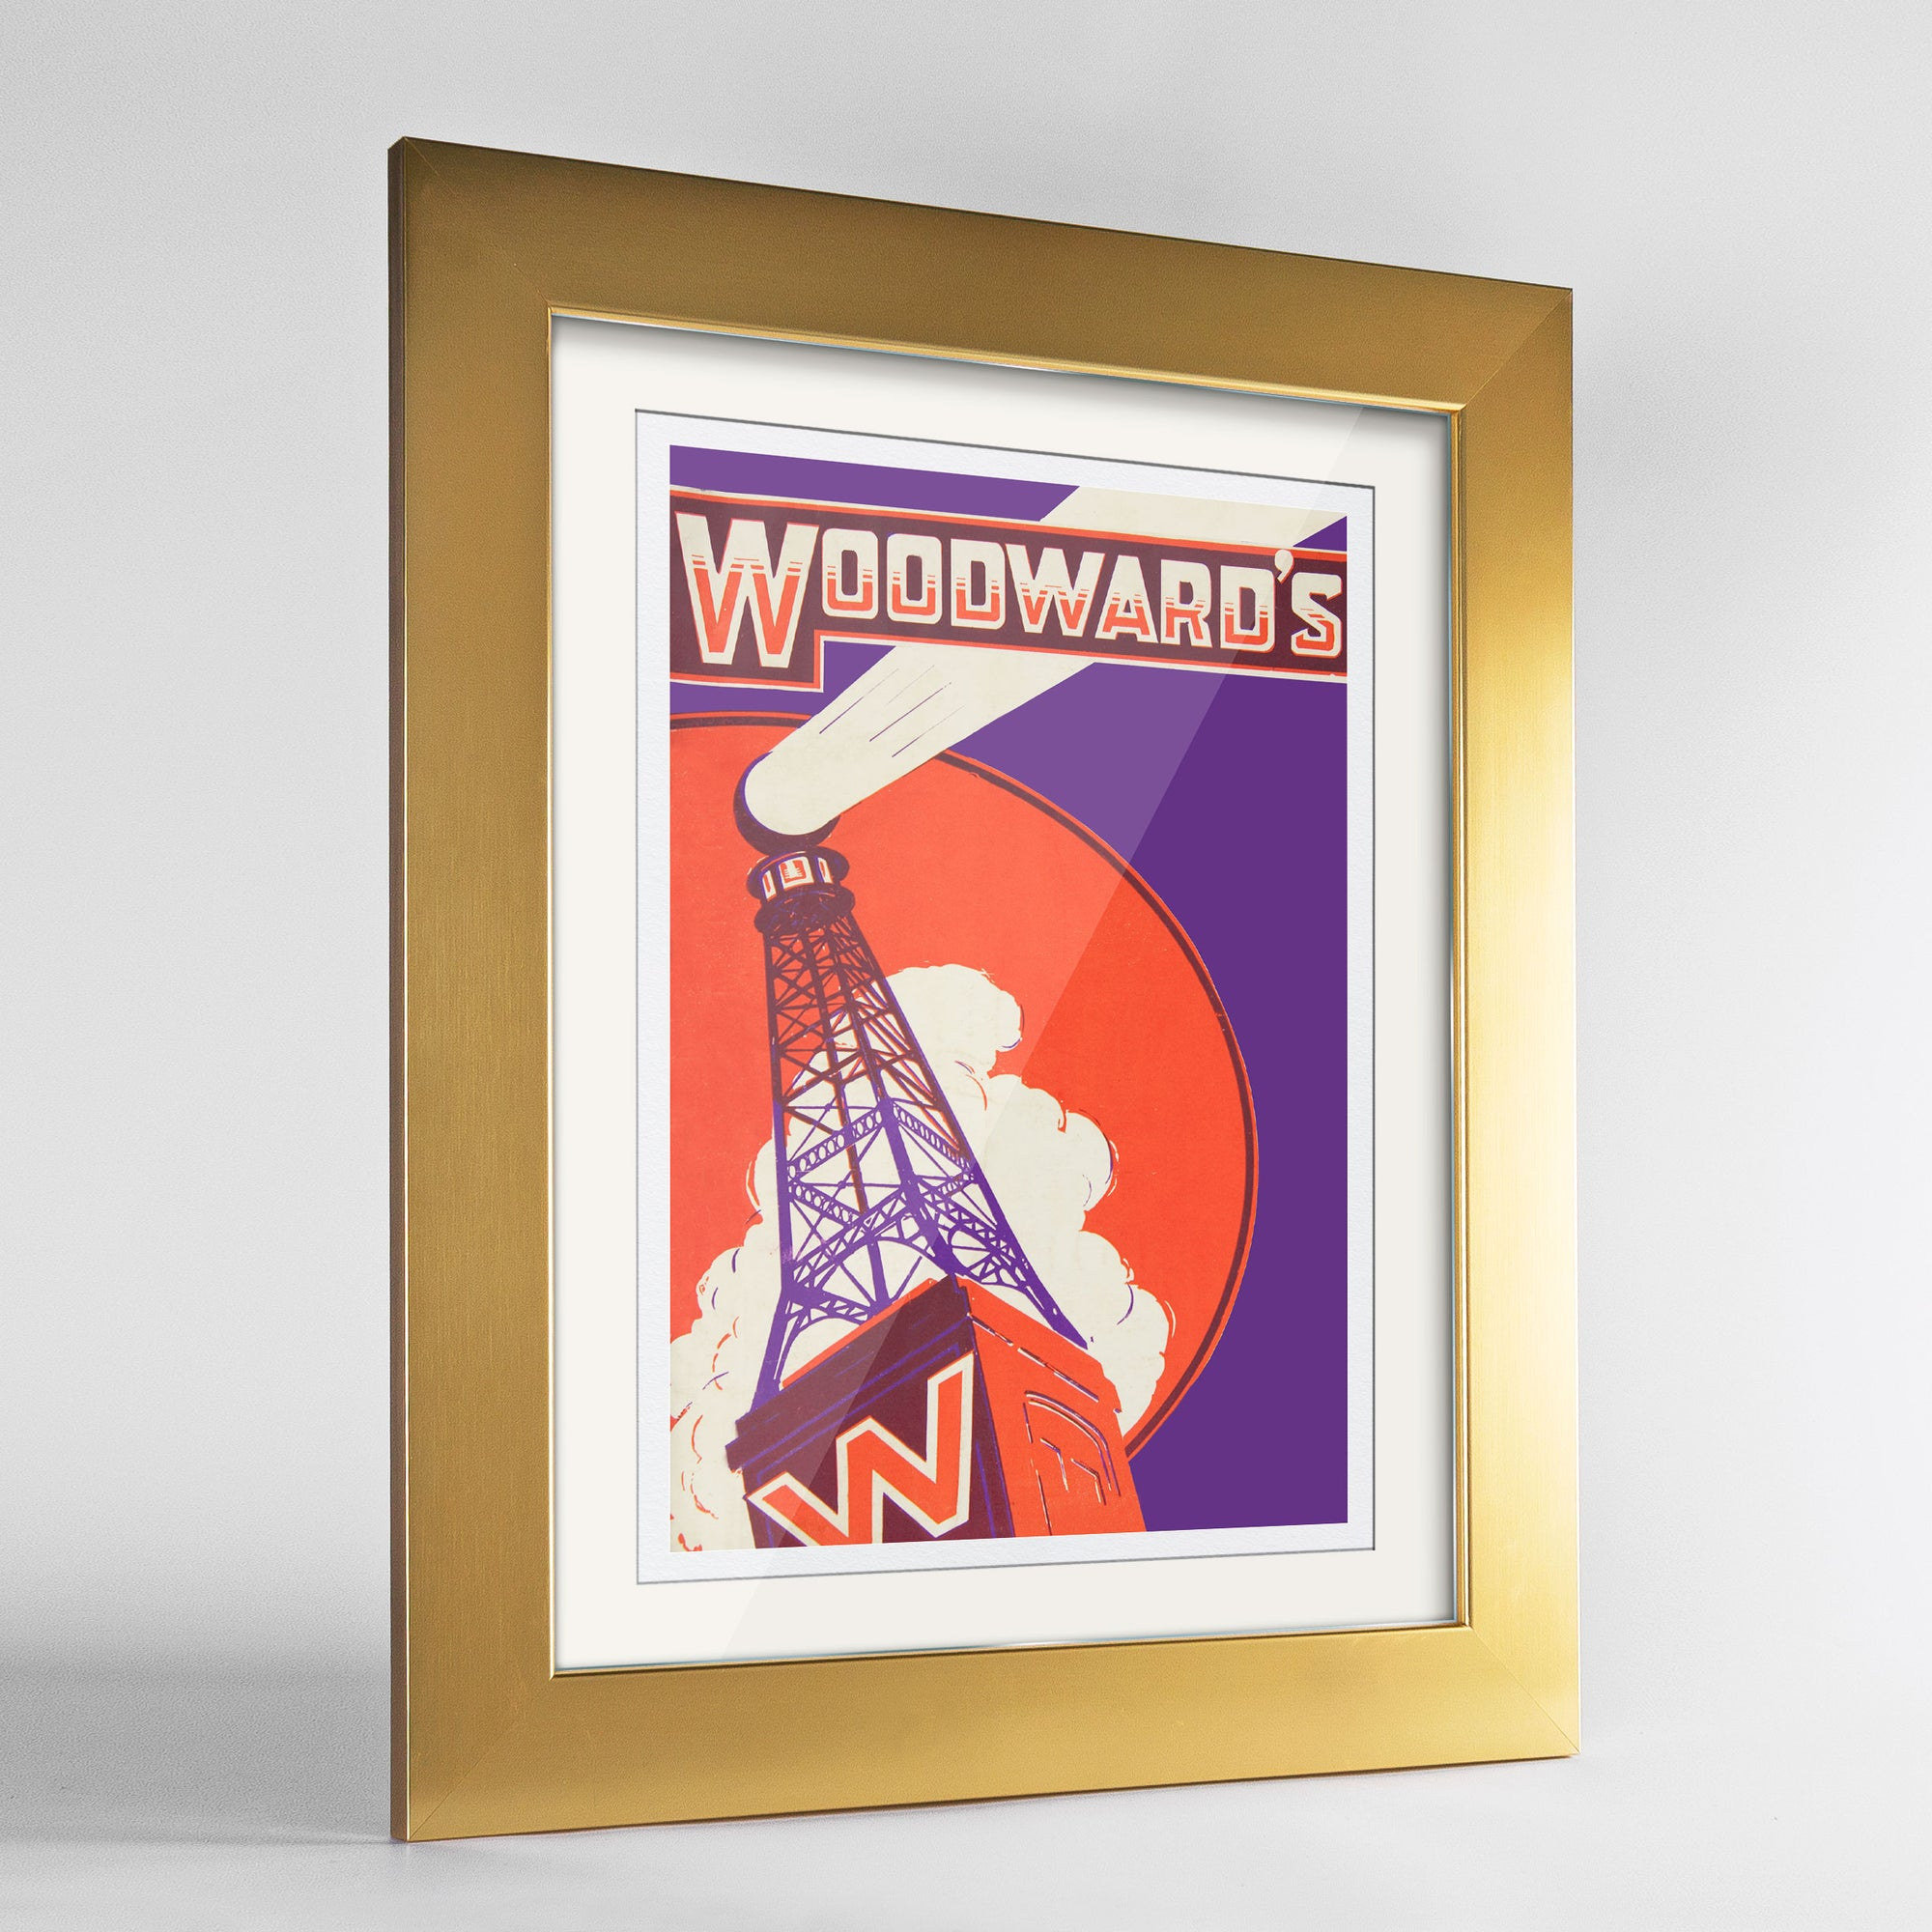 Woodwards Print